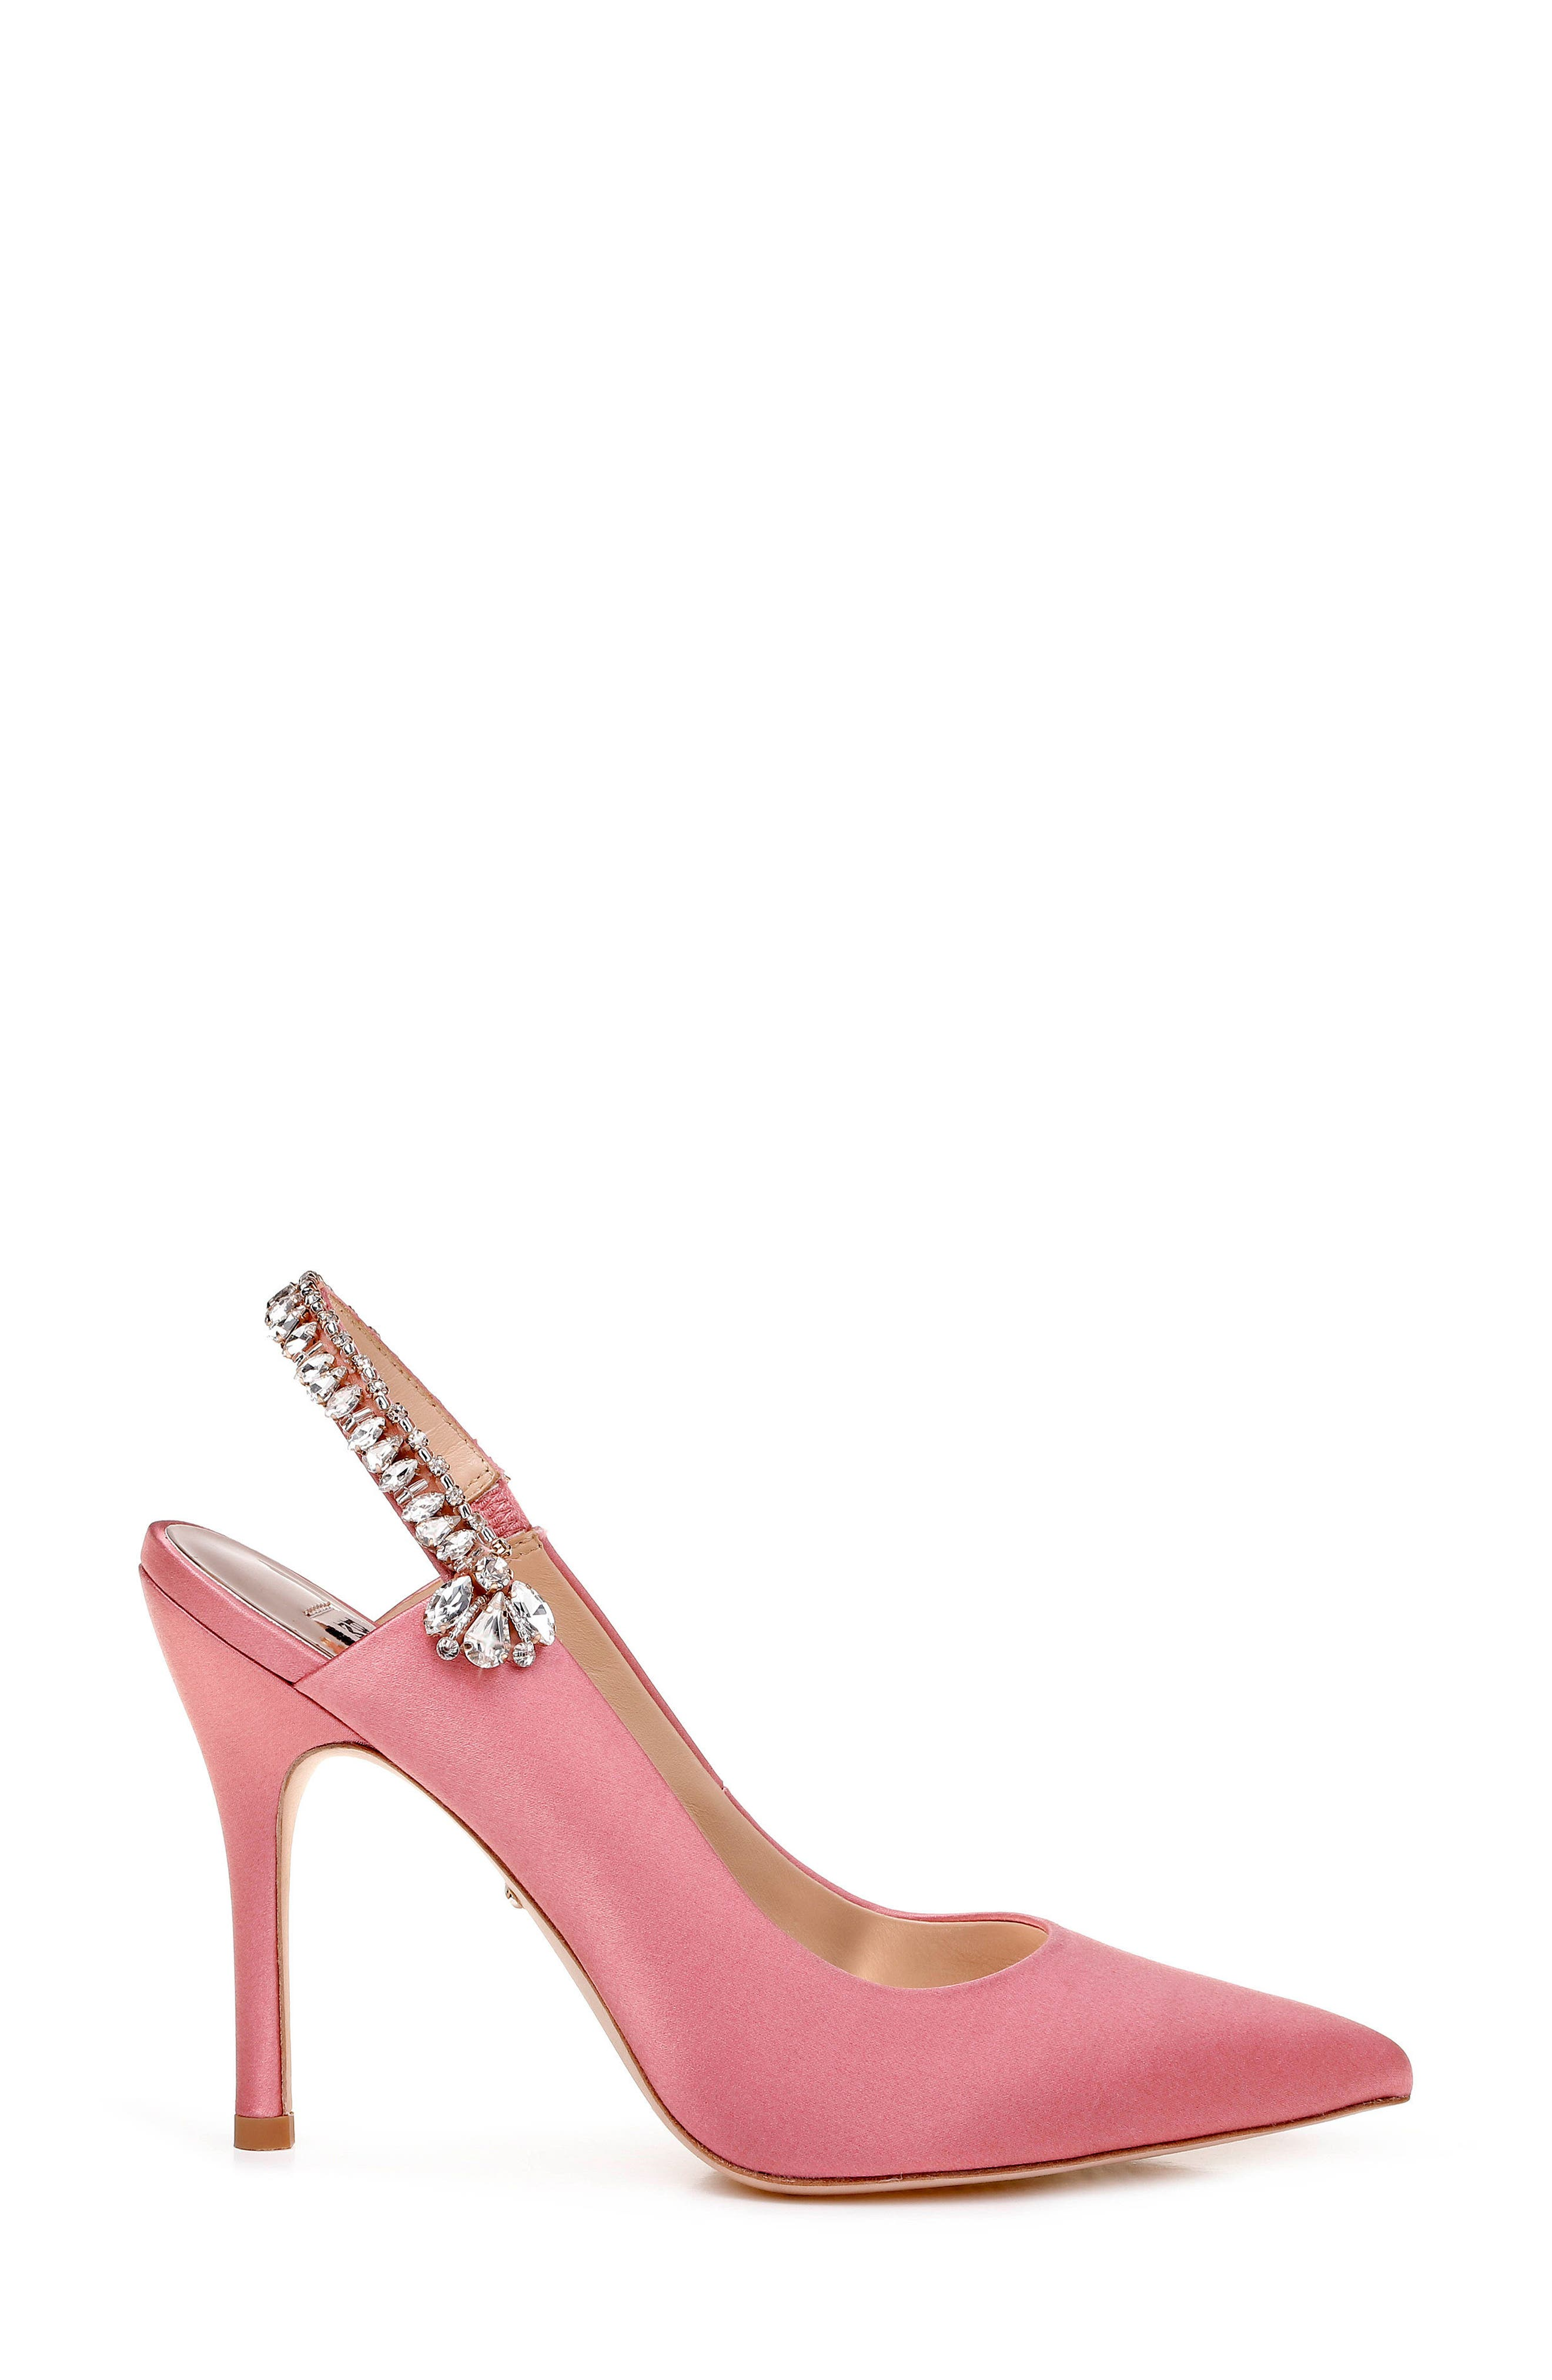 Paxton Pointy Toe Slingback Pump,                             Alternate thumbnail 3, color,                             ROSE SATIN